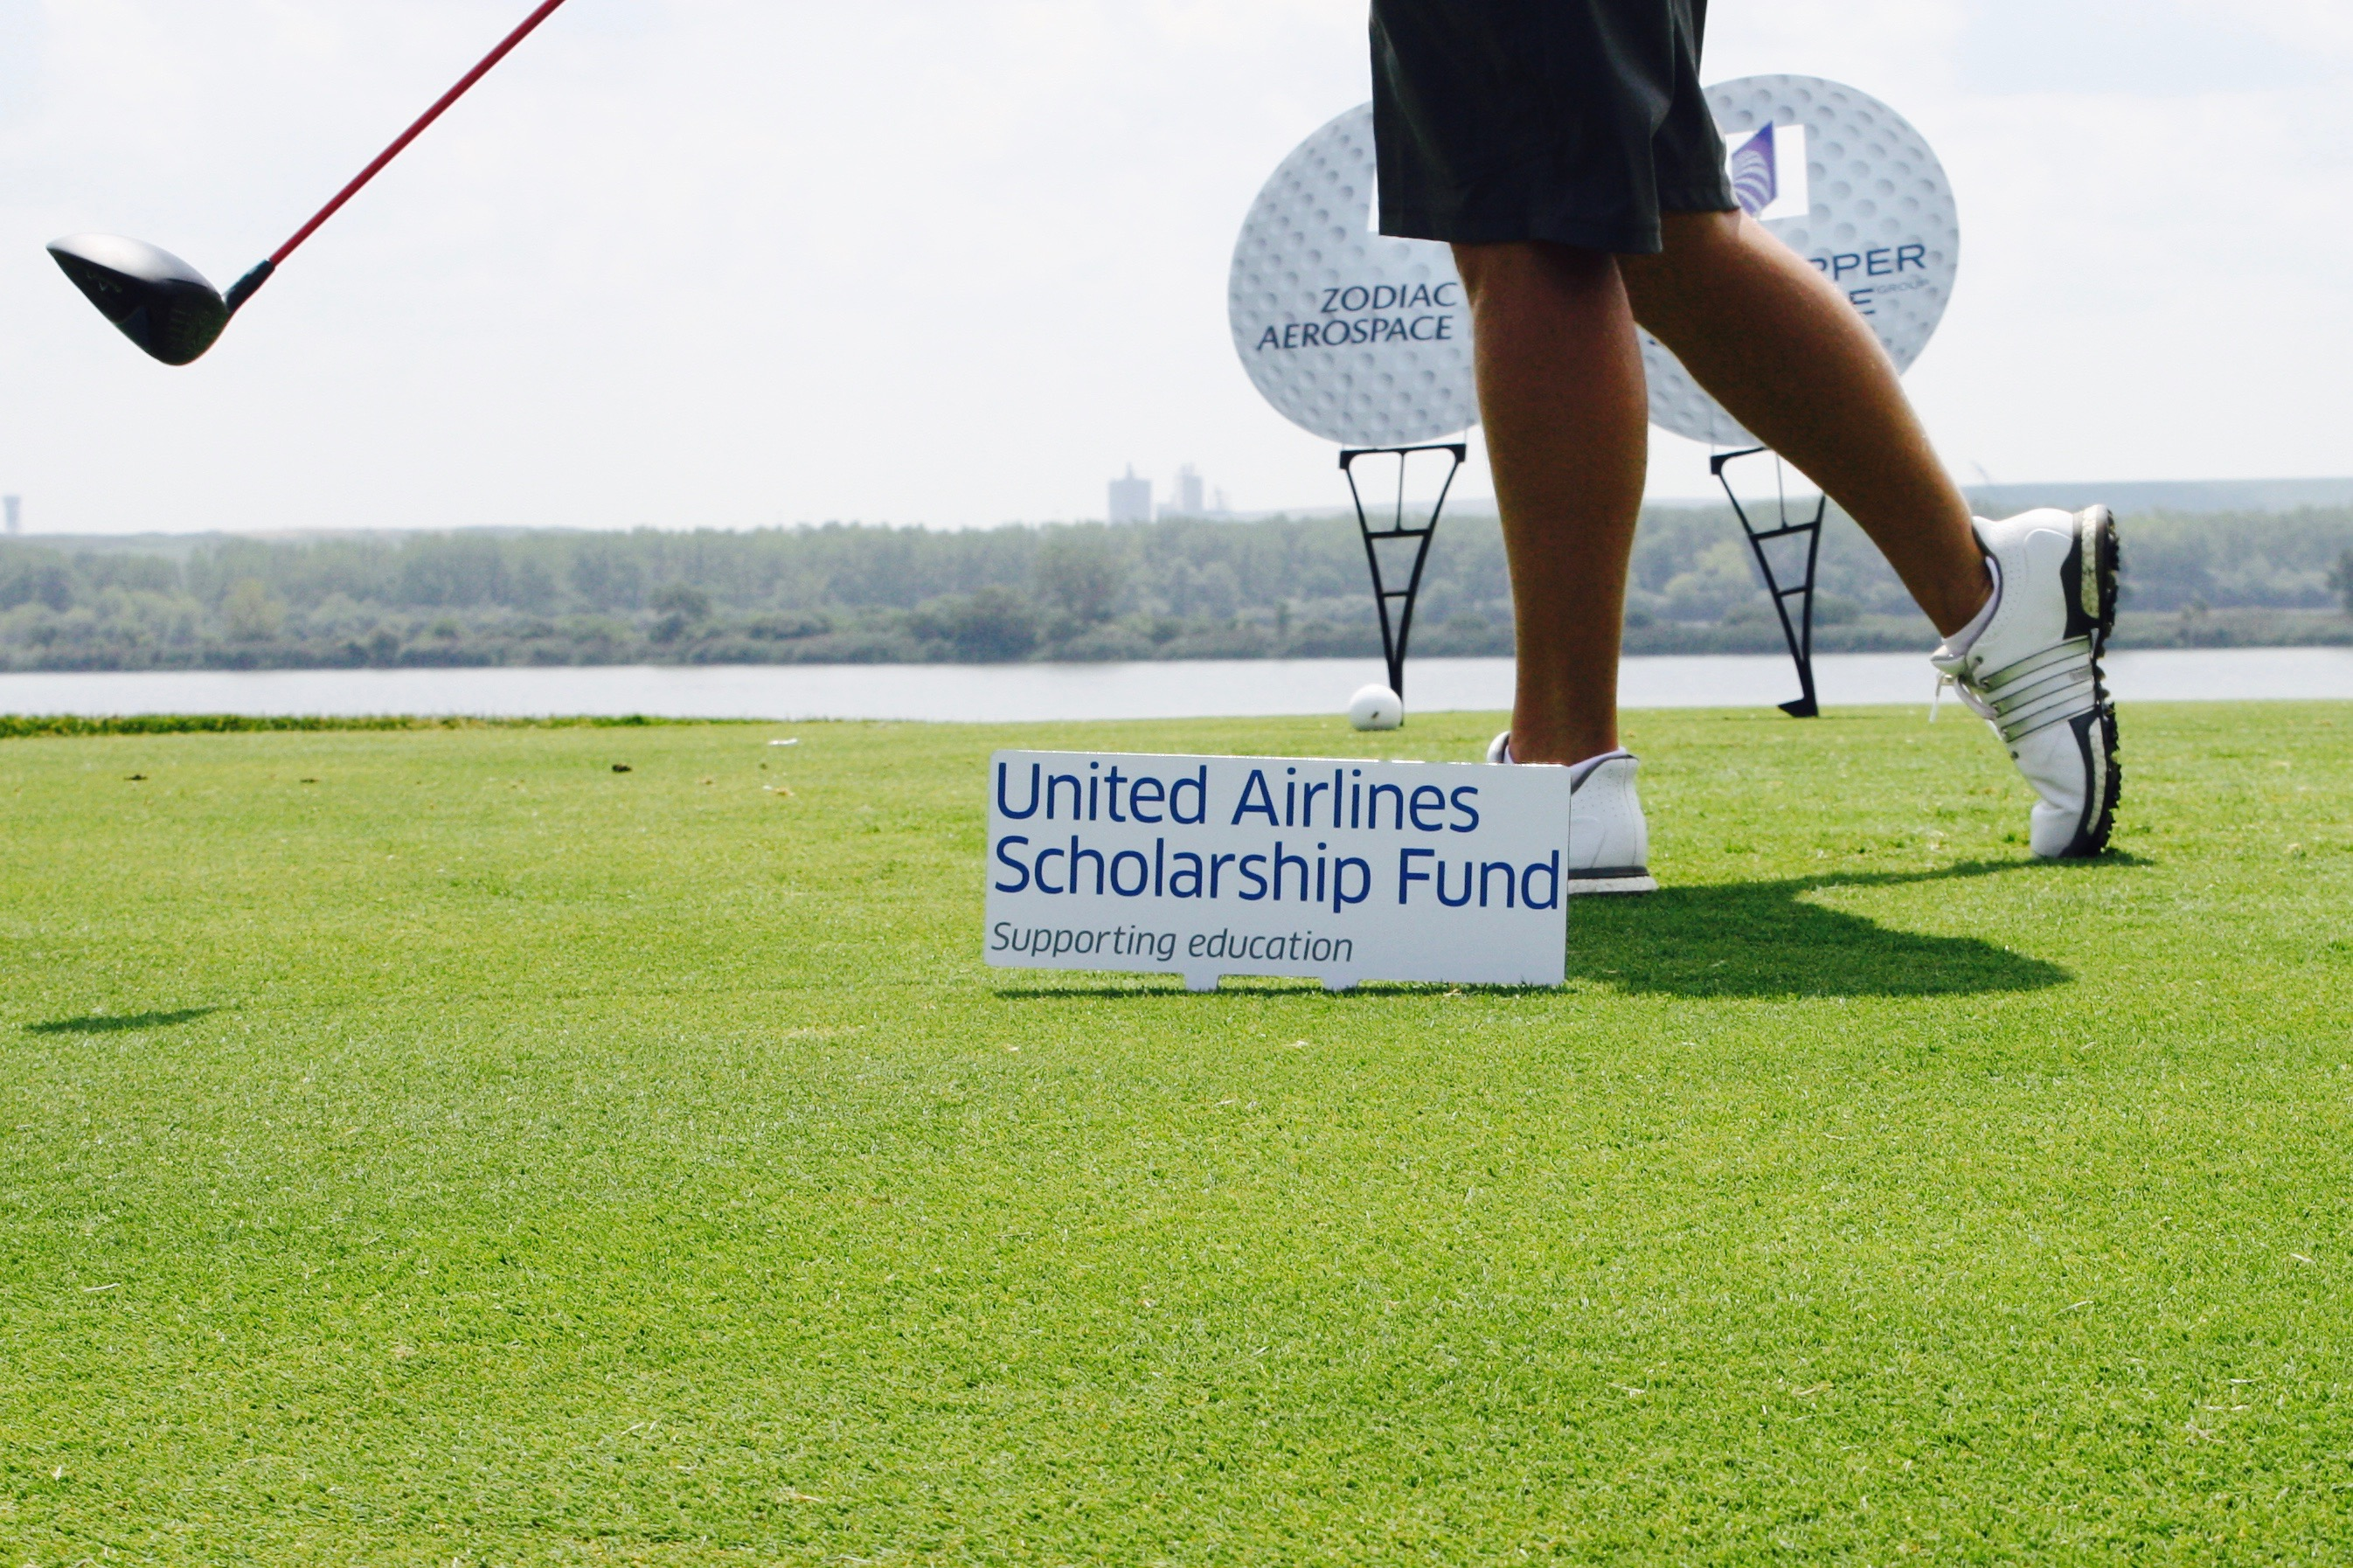 United Airlines Golf Outing